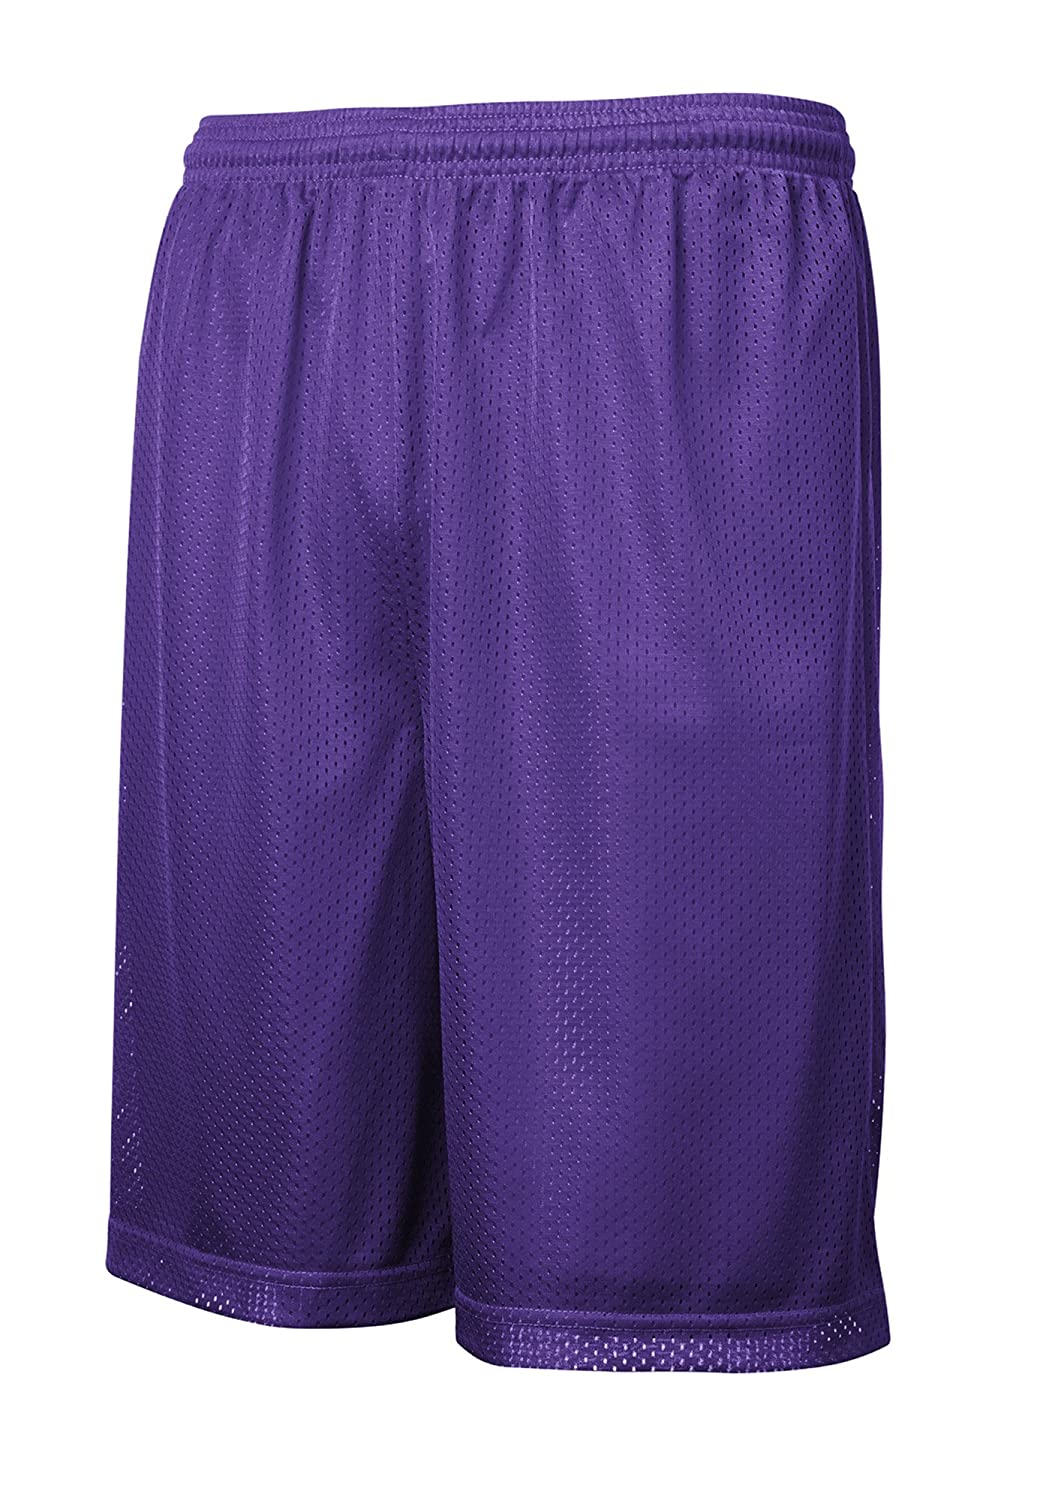 Adult 4XL Joes USA Mens or Youth All Sport Moisture Wicking Athletic Shorts in Youth XS